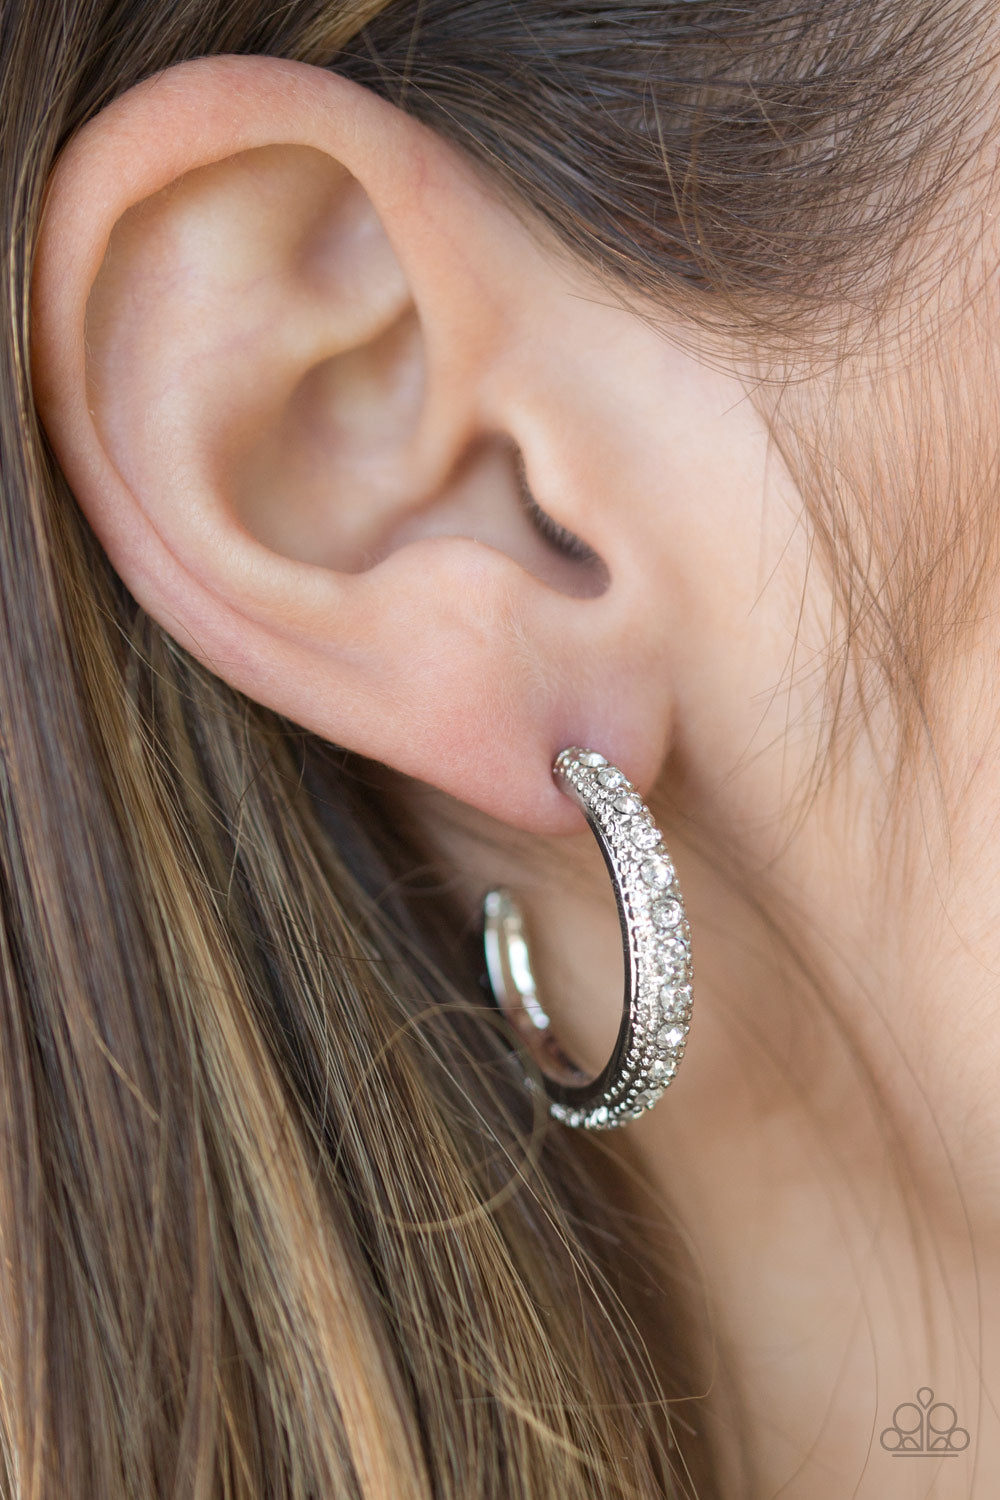 Encrusted in dazzling white rhinestones, a studded silver hoop swings from the ear for a glamorous look. Earring attaches to a standard post fitting. Hoop measures 1